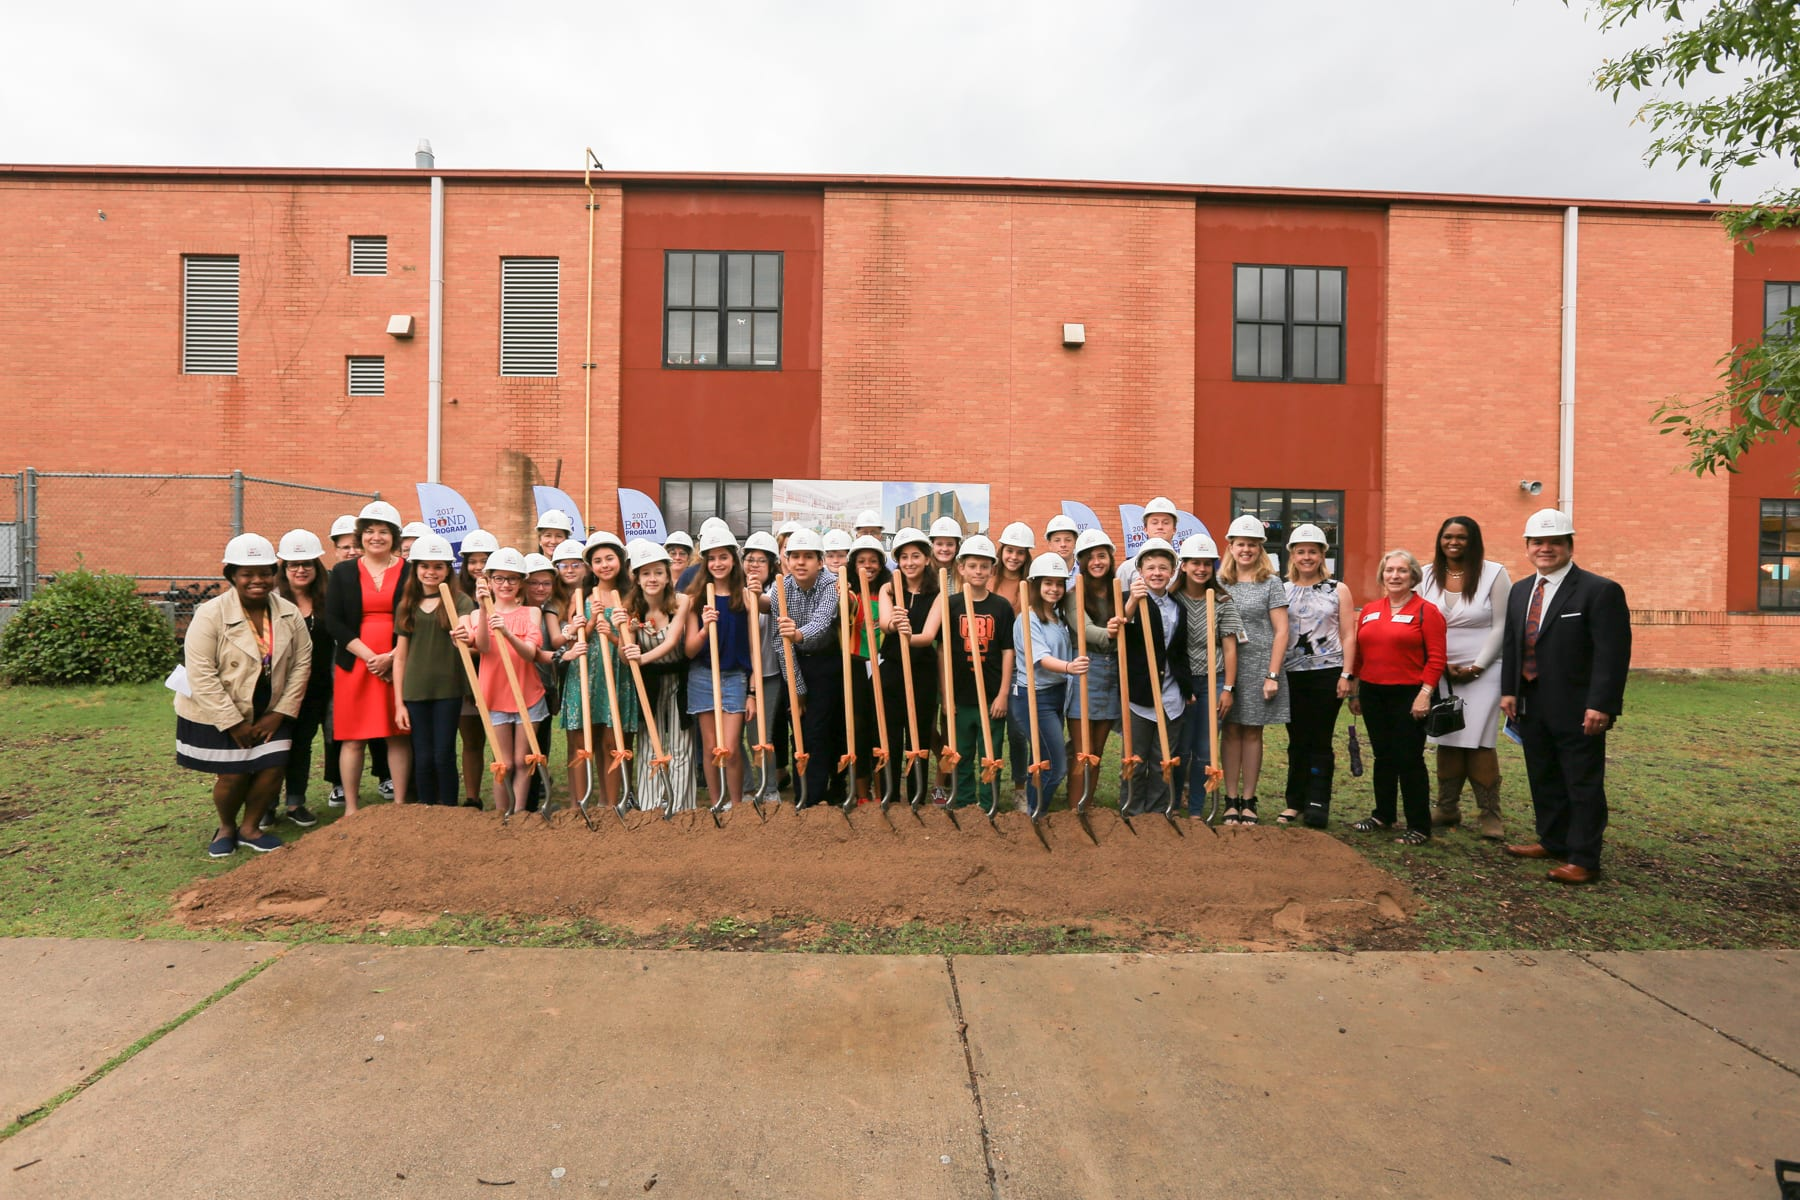 Murchison Middle School Groundbreaking student government and staff welcome Austin ISD to groundbreaking ceremony.